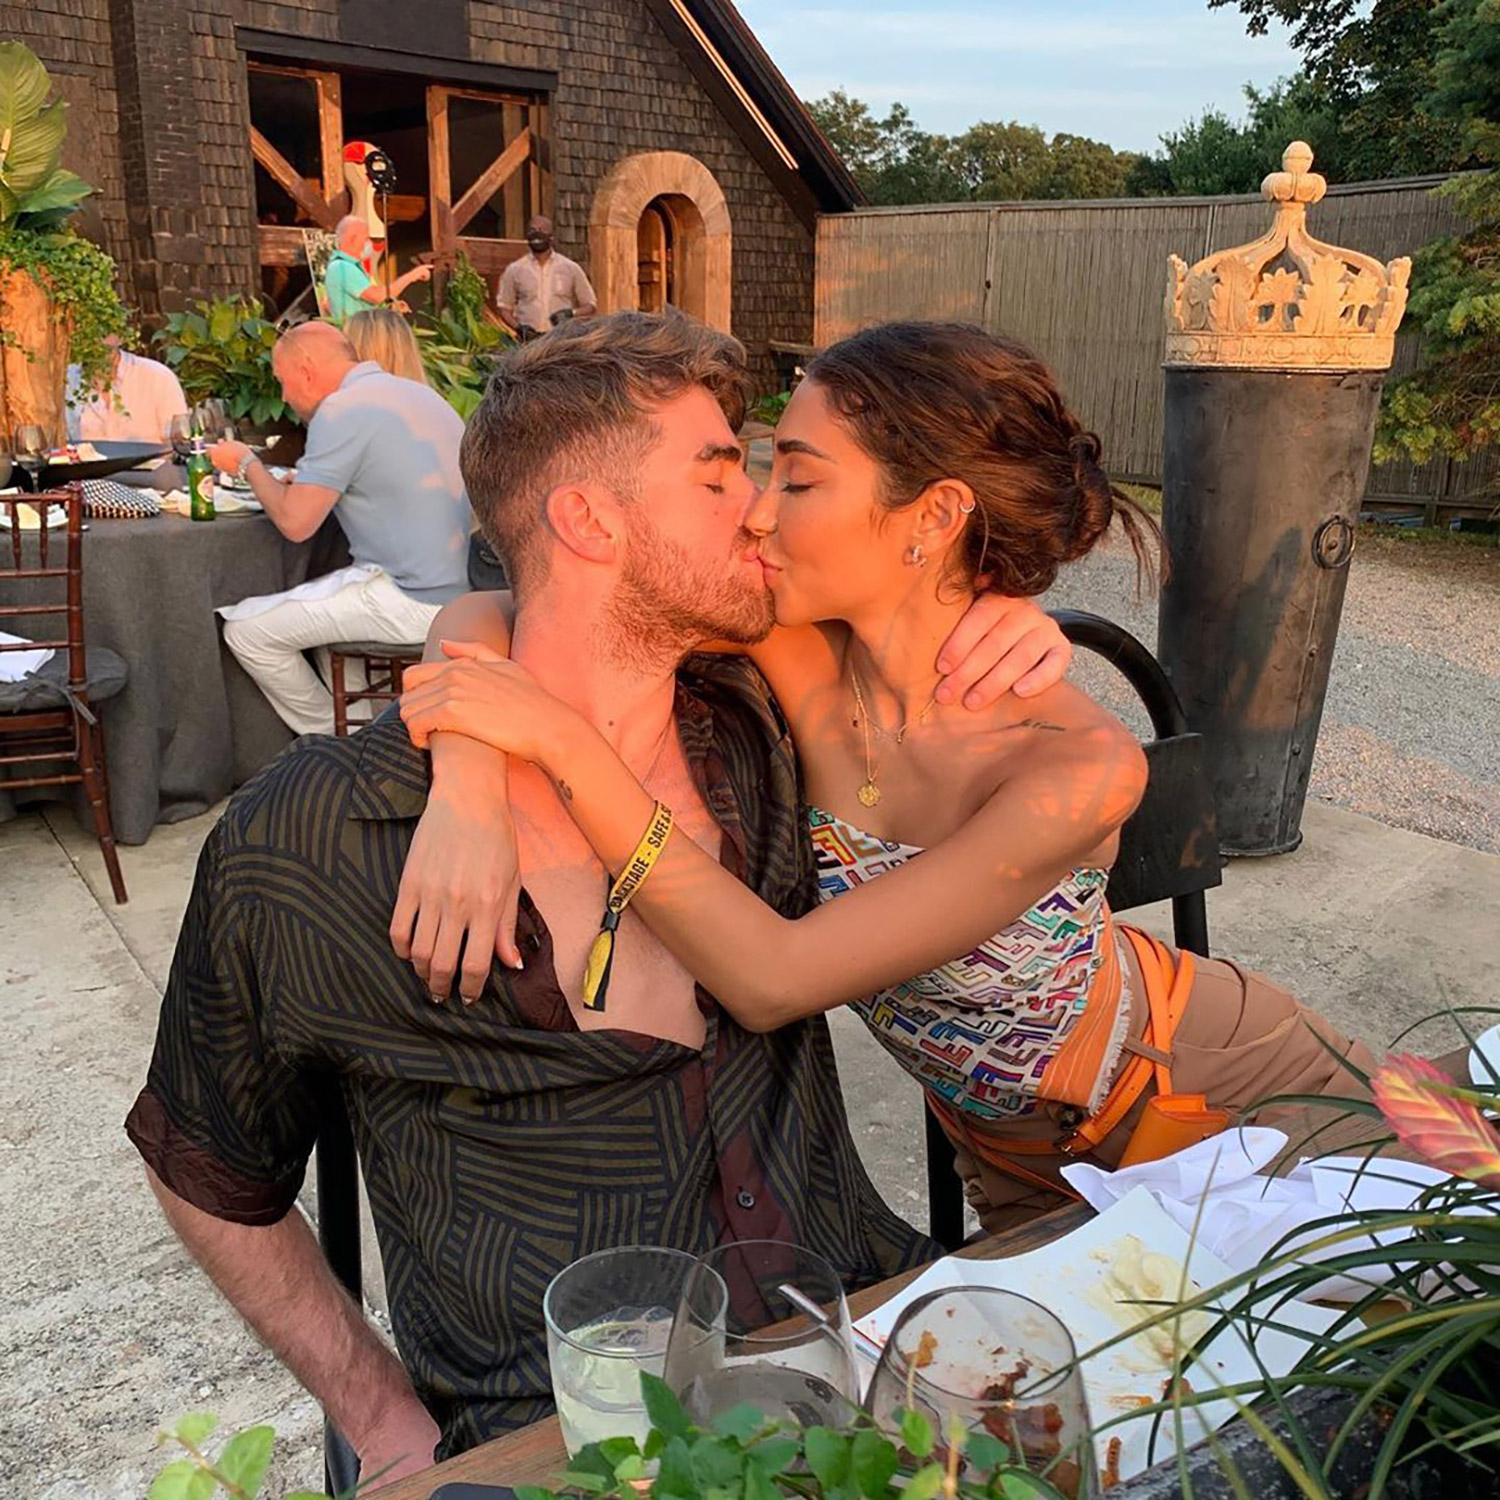 Chantel Jeffries and Drew Taggart